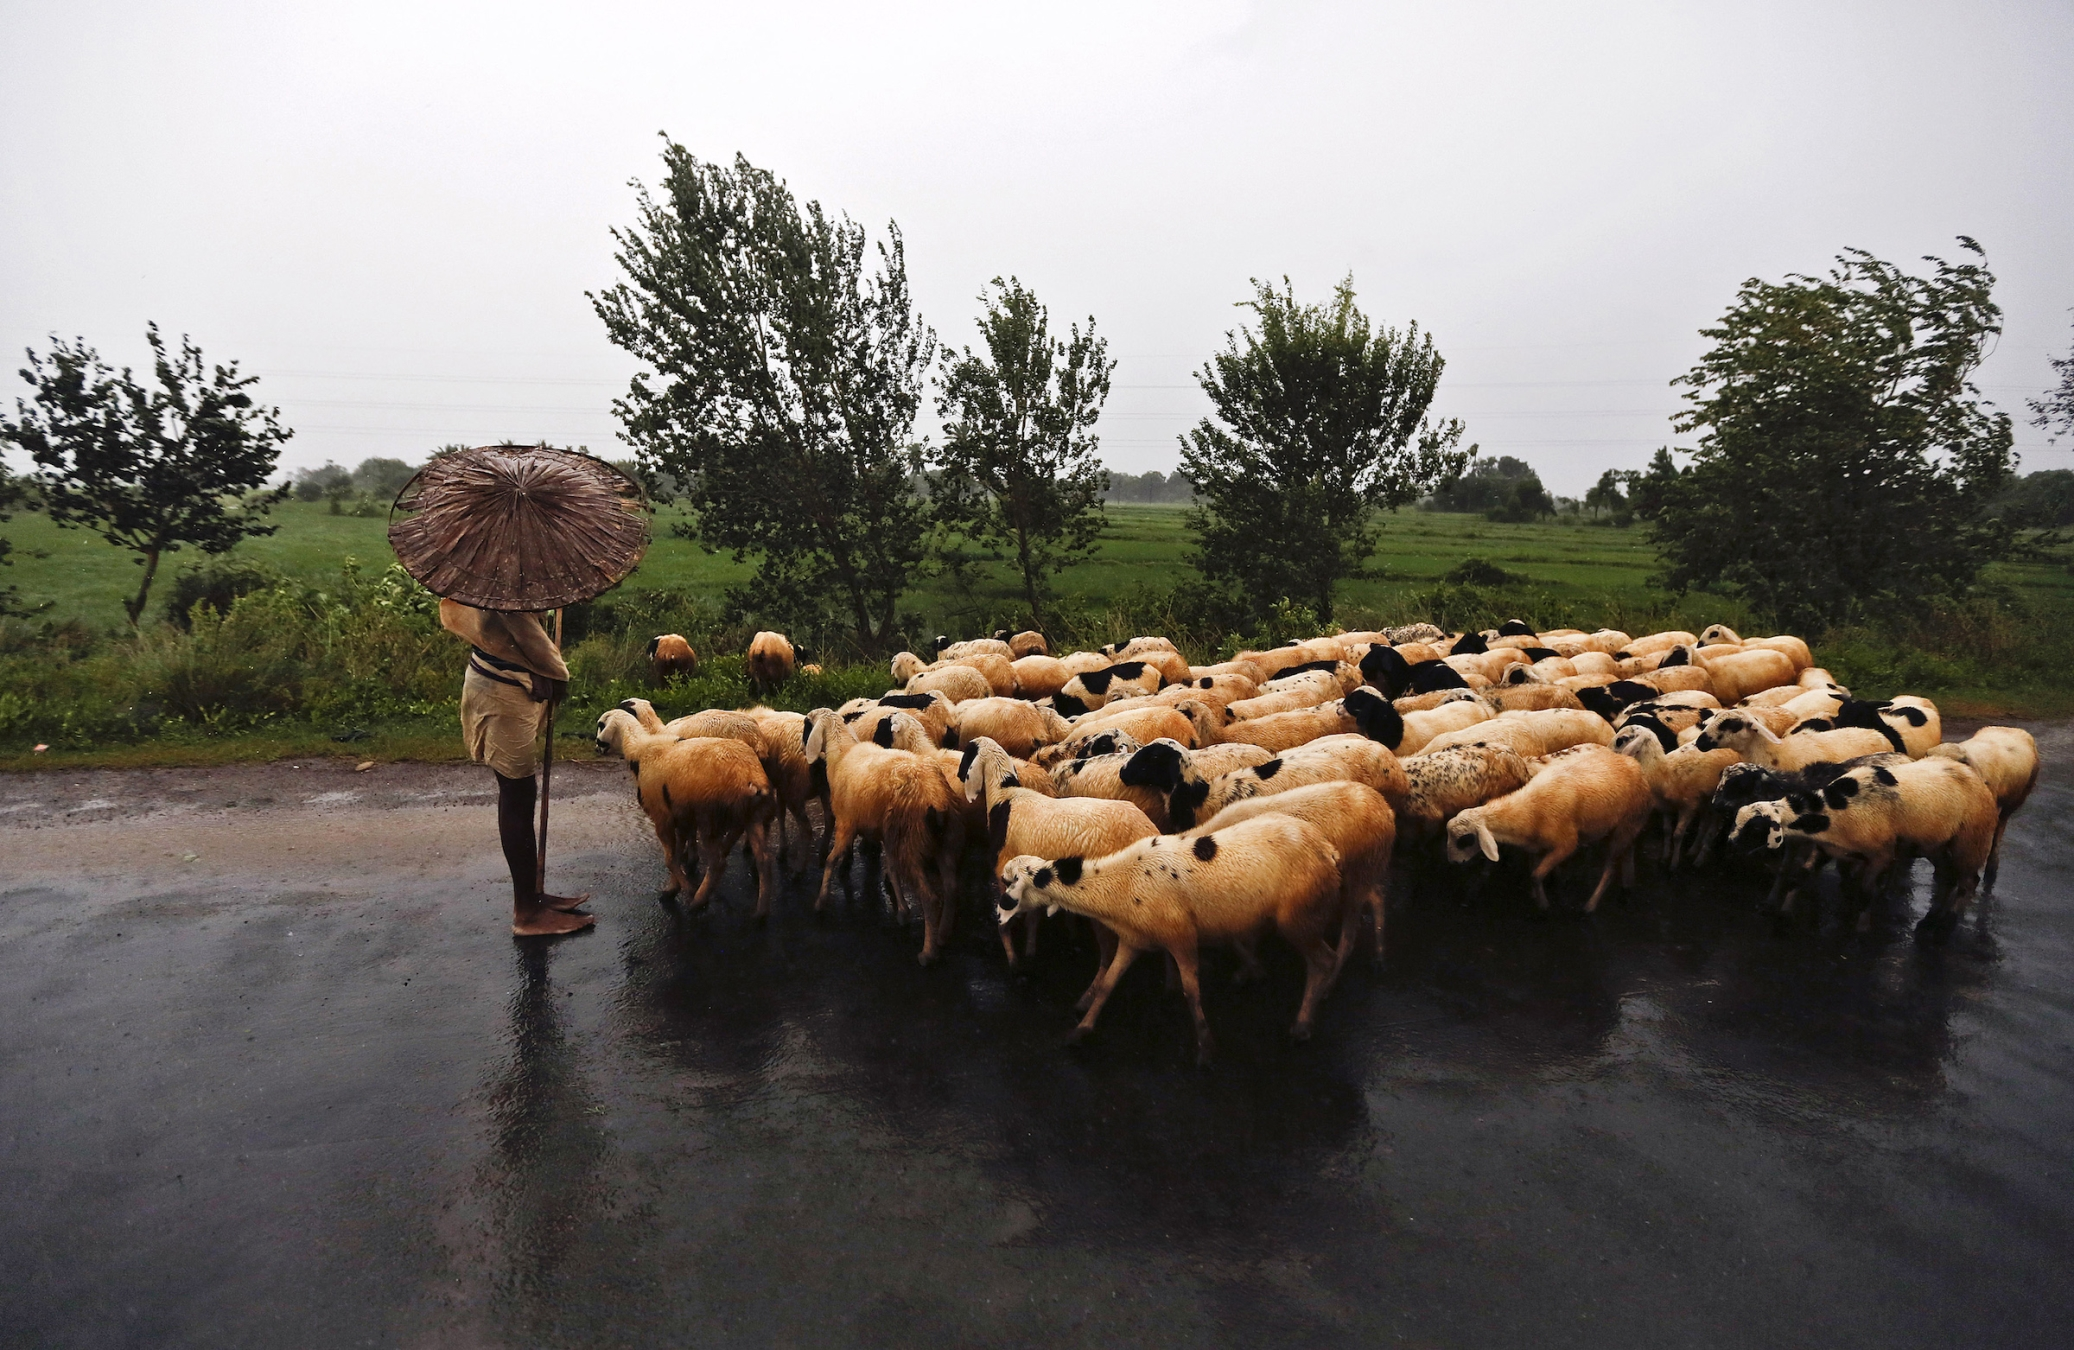 A shepherd holds an umbrella as he stands on a highway with his flock in Srikakulam district in the southern Indian state of Andhra Pradesh October 12, 2013. Rain and wind lashed India's east coast on Saturday, forcing more than 400,000 people to flee to storm shelters as one of the country's largest cyclones closed in, threatening to cut a wide swathe of devastation through farmland and fishing hamlets. Filling most of the Bay of Bengal, Cyclone Phailin was about 90 km (124 miles) off the coast by late afternoon and was expected to strike the coast by nightfall with winds of between 210 kph (130 mph) and 220 kph (137 mph). REUTERS/Adnan Abidi (INDIA - Tags: ENVIRONMENT DISASTER TPX IMAGES OF THE DAY) - RTX148VY